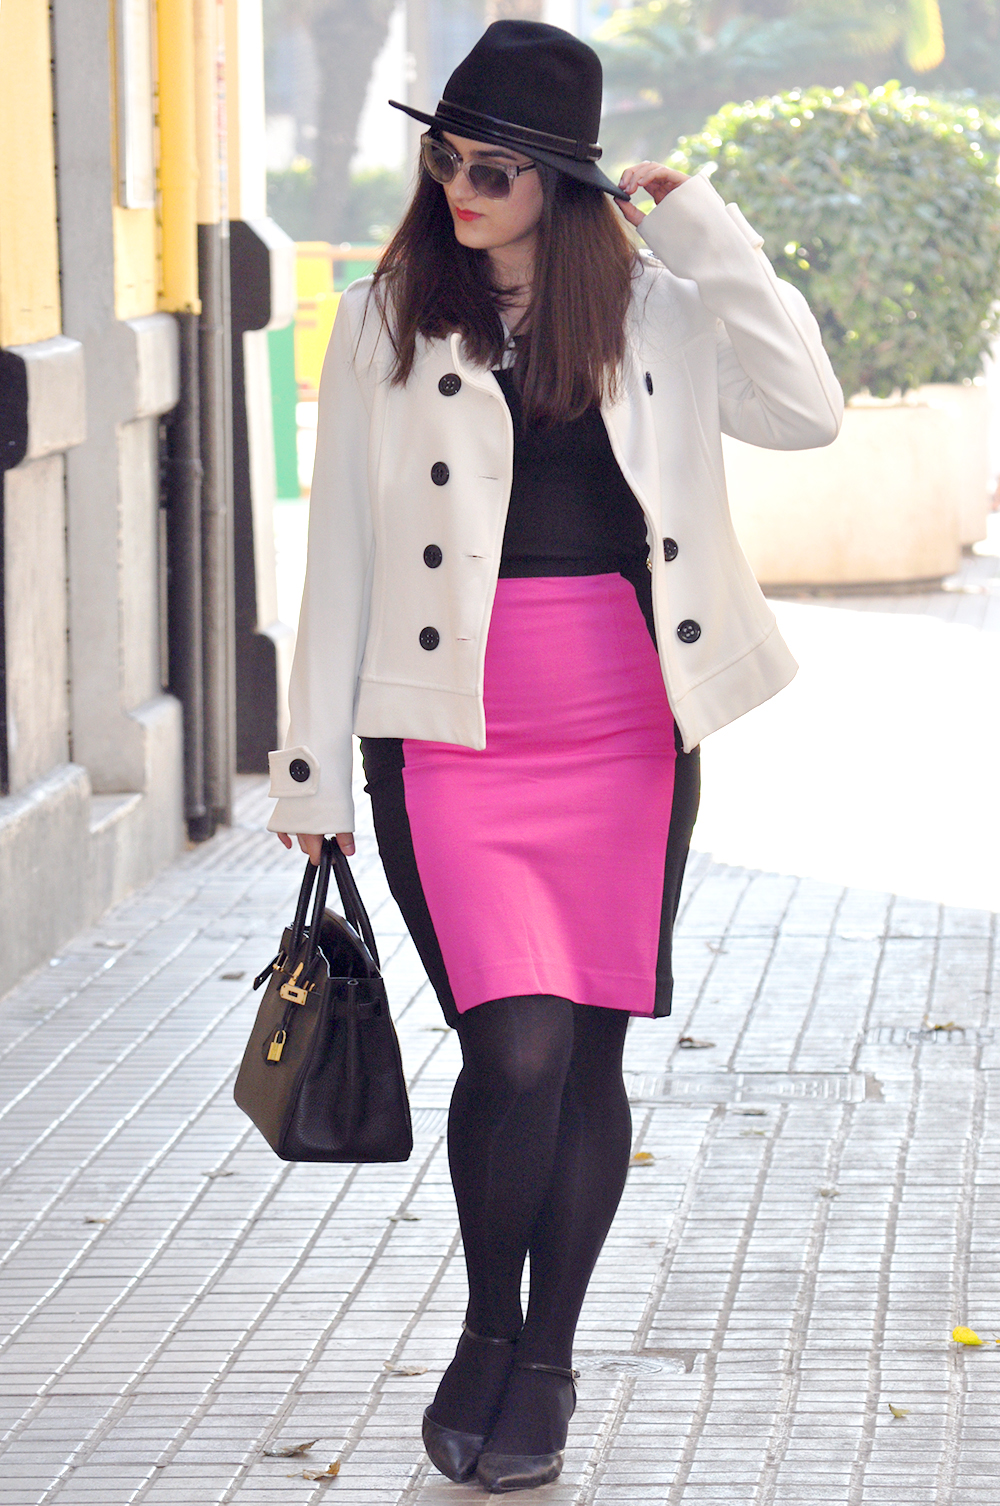 valencia spain blogger moda fashion, somethingfashion amanda ramon, pink skirt pencil beloved white coat hermes birkin streetstyle, streetsyle fedora hat with skirt and coat transparent sunglasses fashionable cool outfit